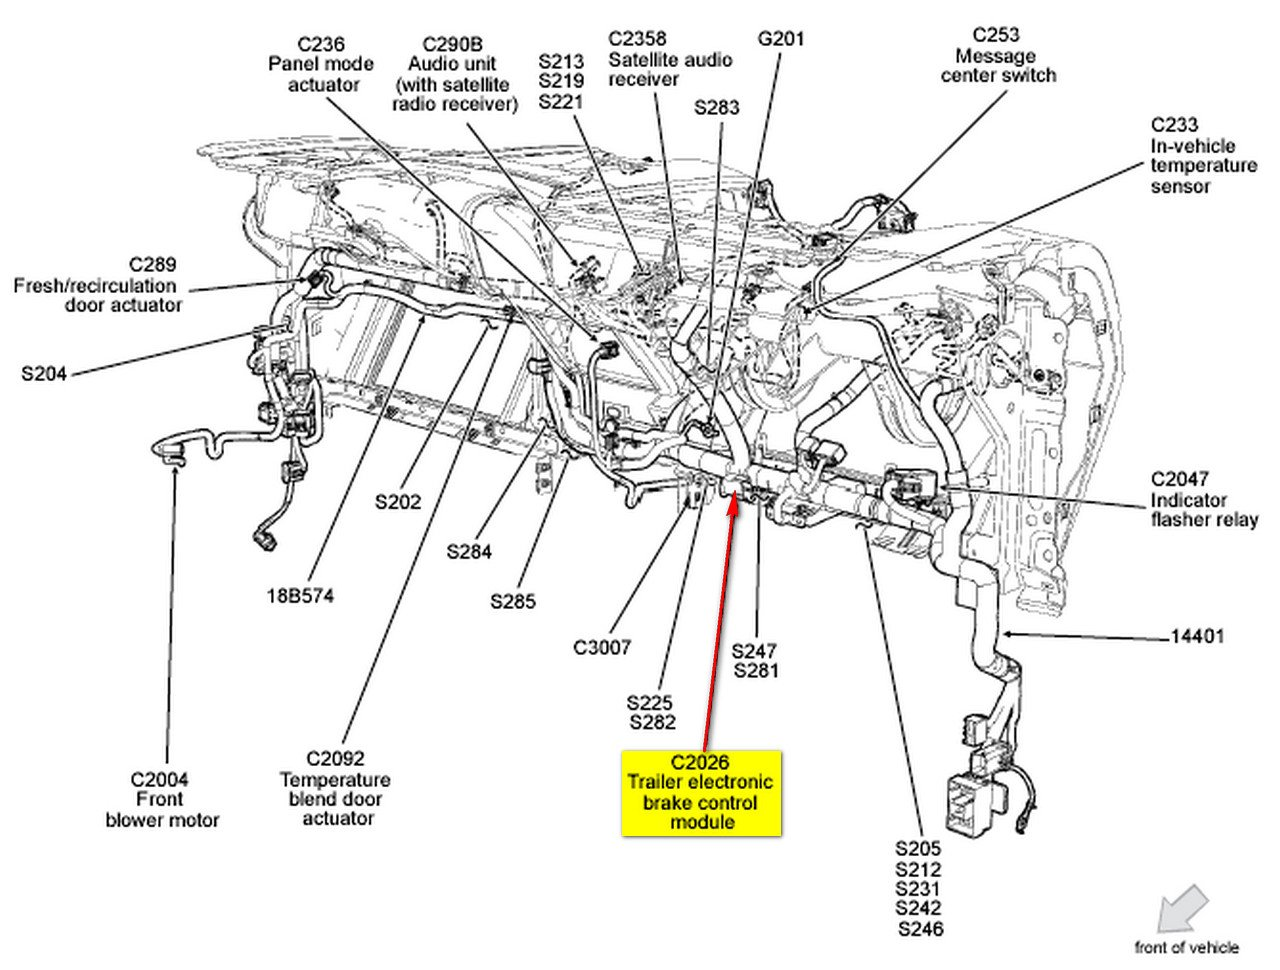 2009 f150 trailer brake controller diagram